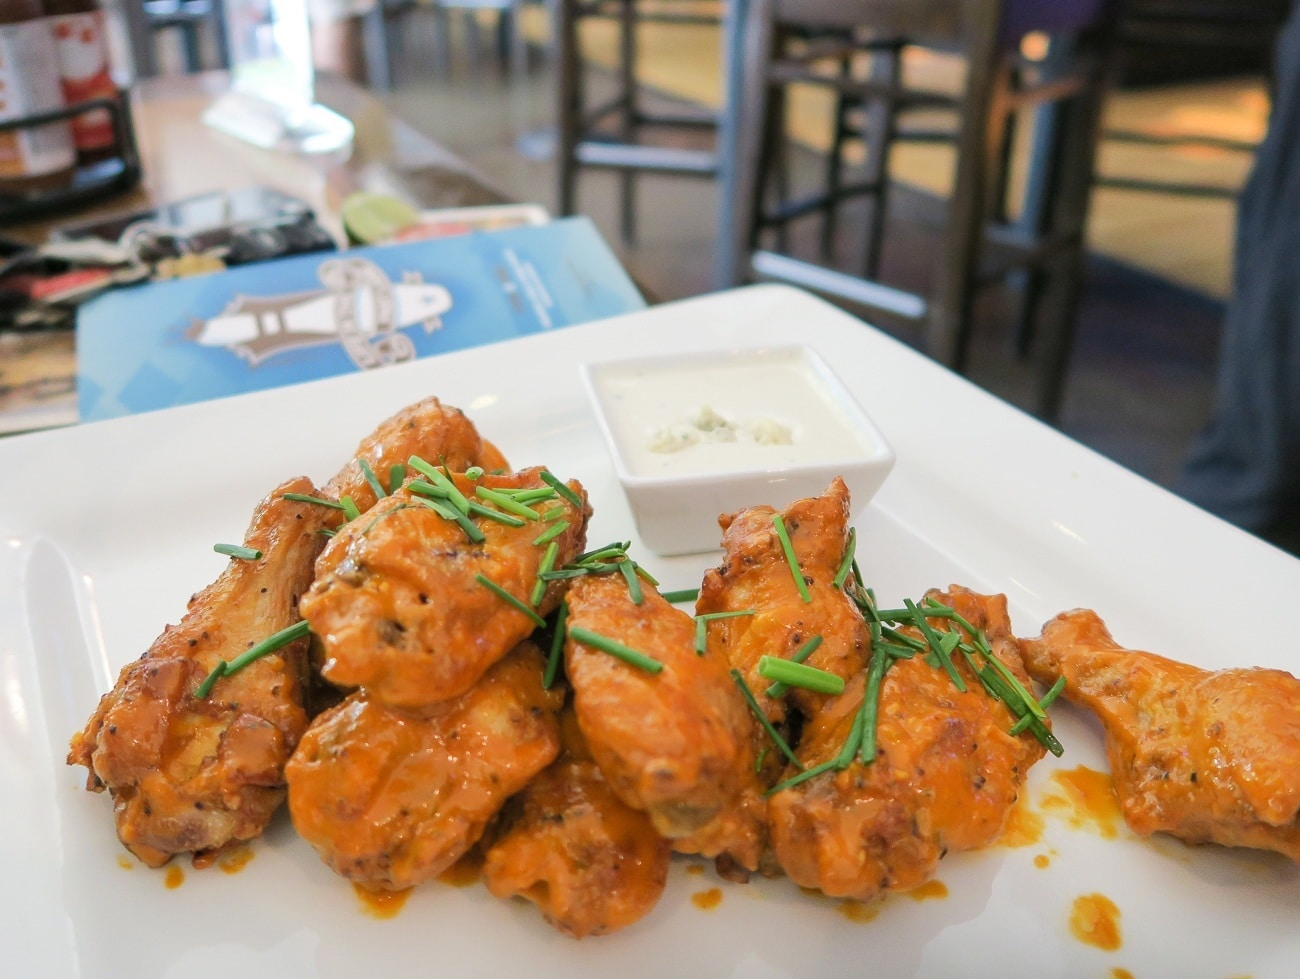 Delicious tavern wings at East Village Tavern and Bowl in San Diego